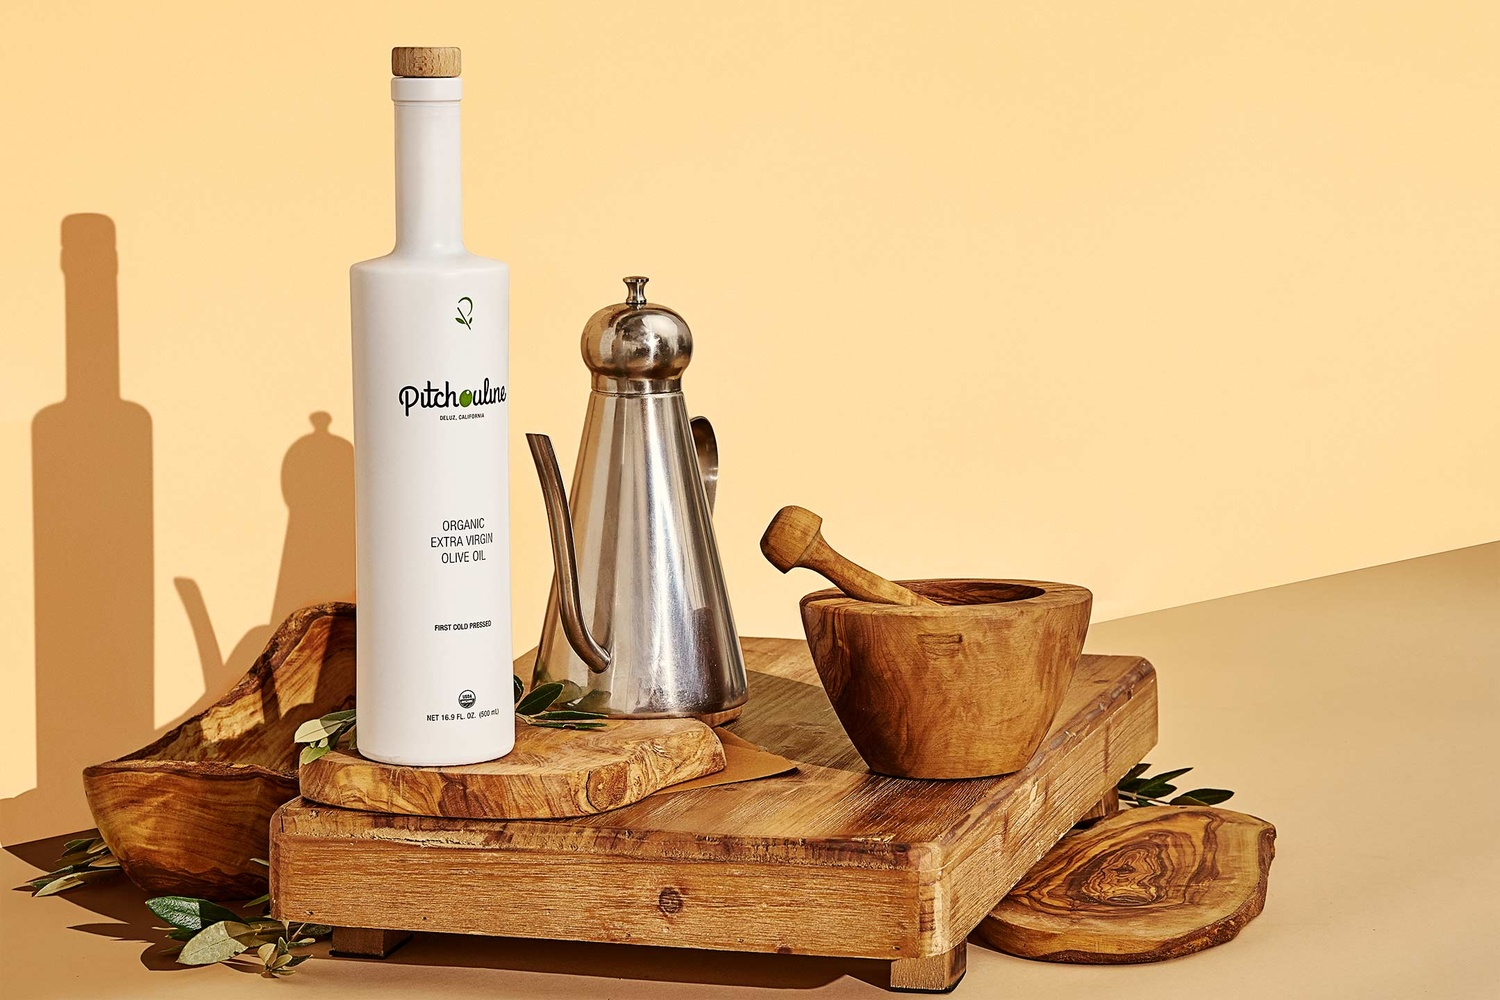 Pitchouline Olive Oil by Chase Wilson